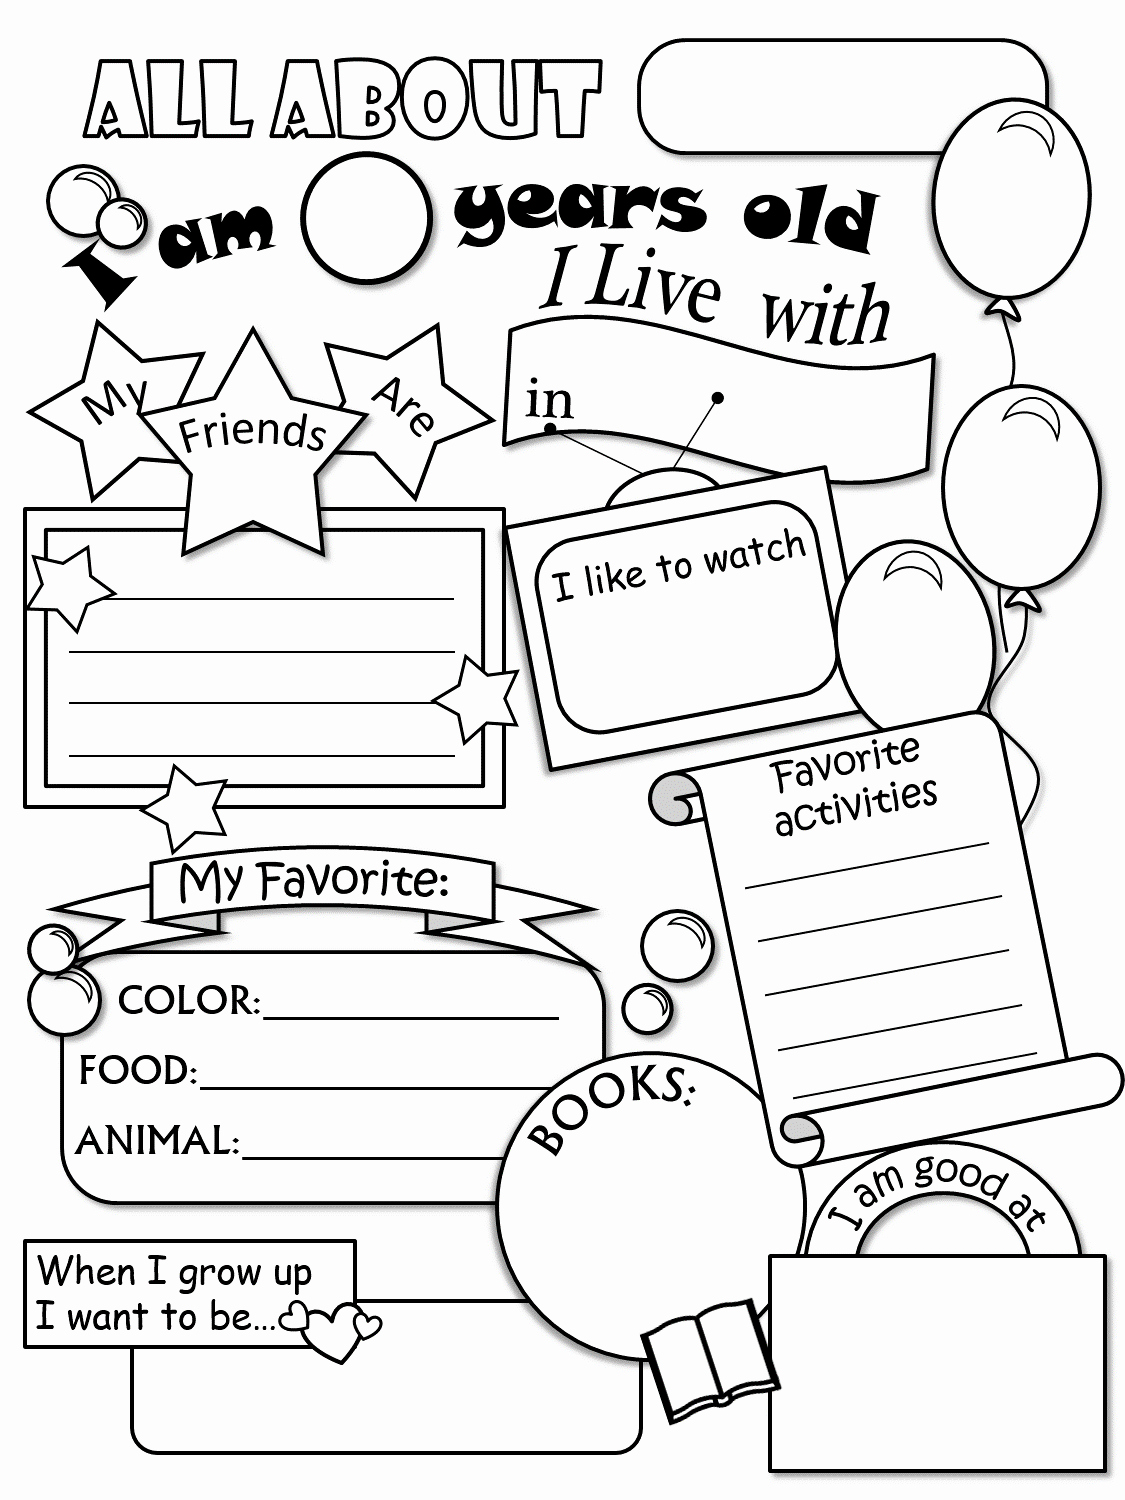 All About Me Worksheet Best Of All About Me Worksheet